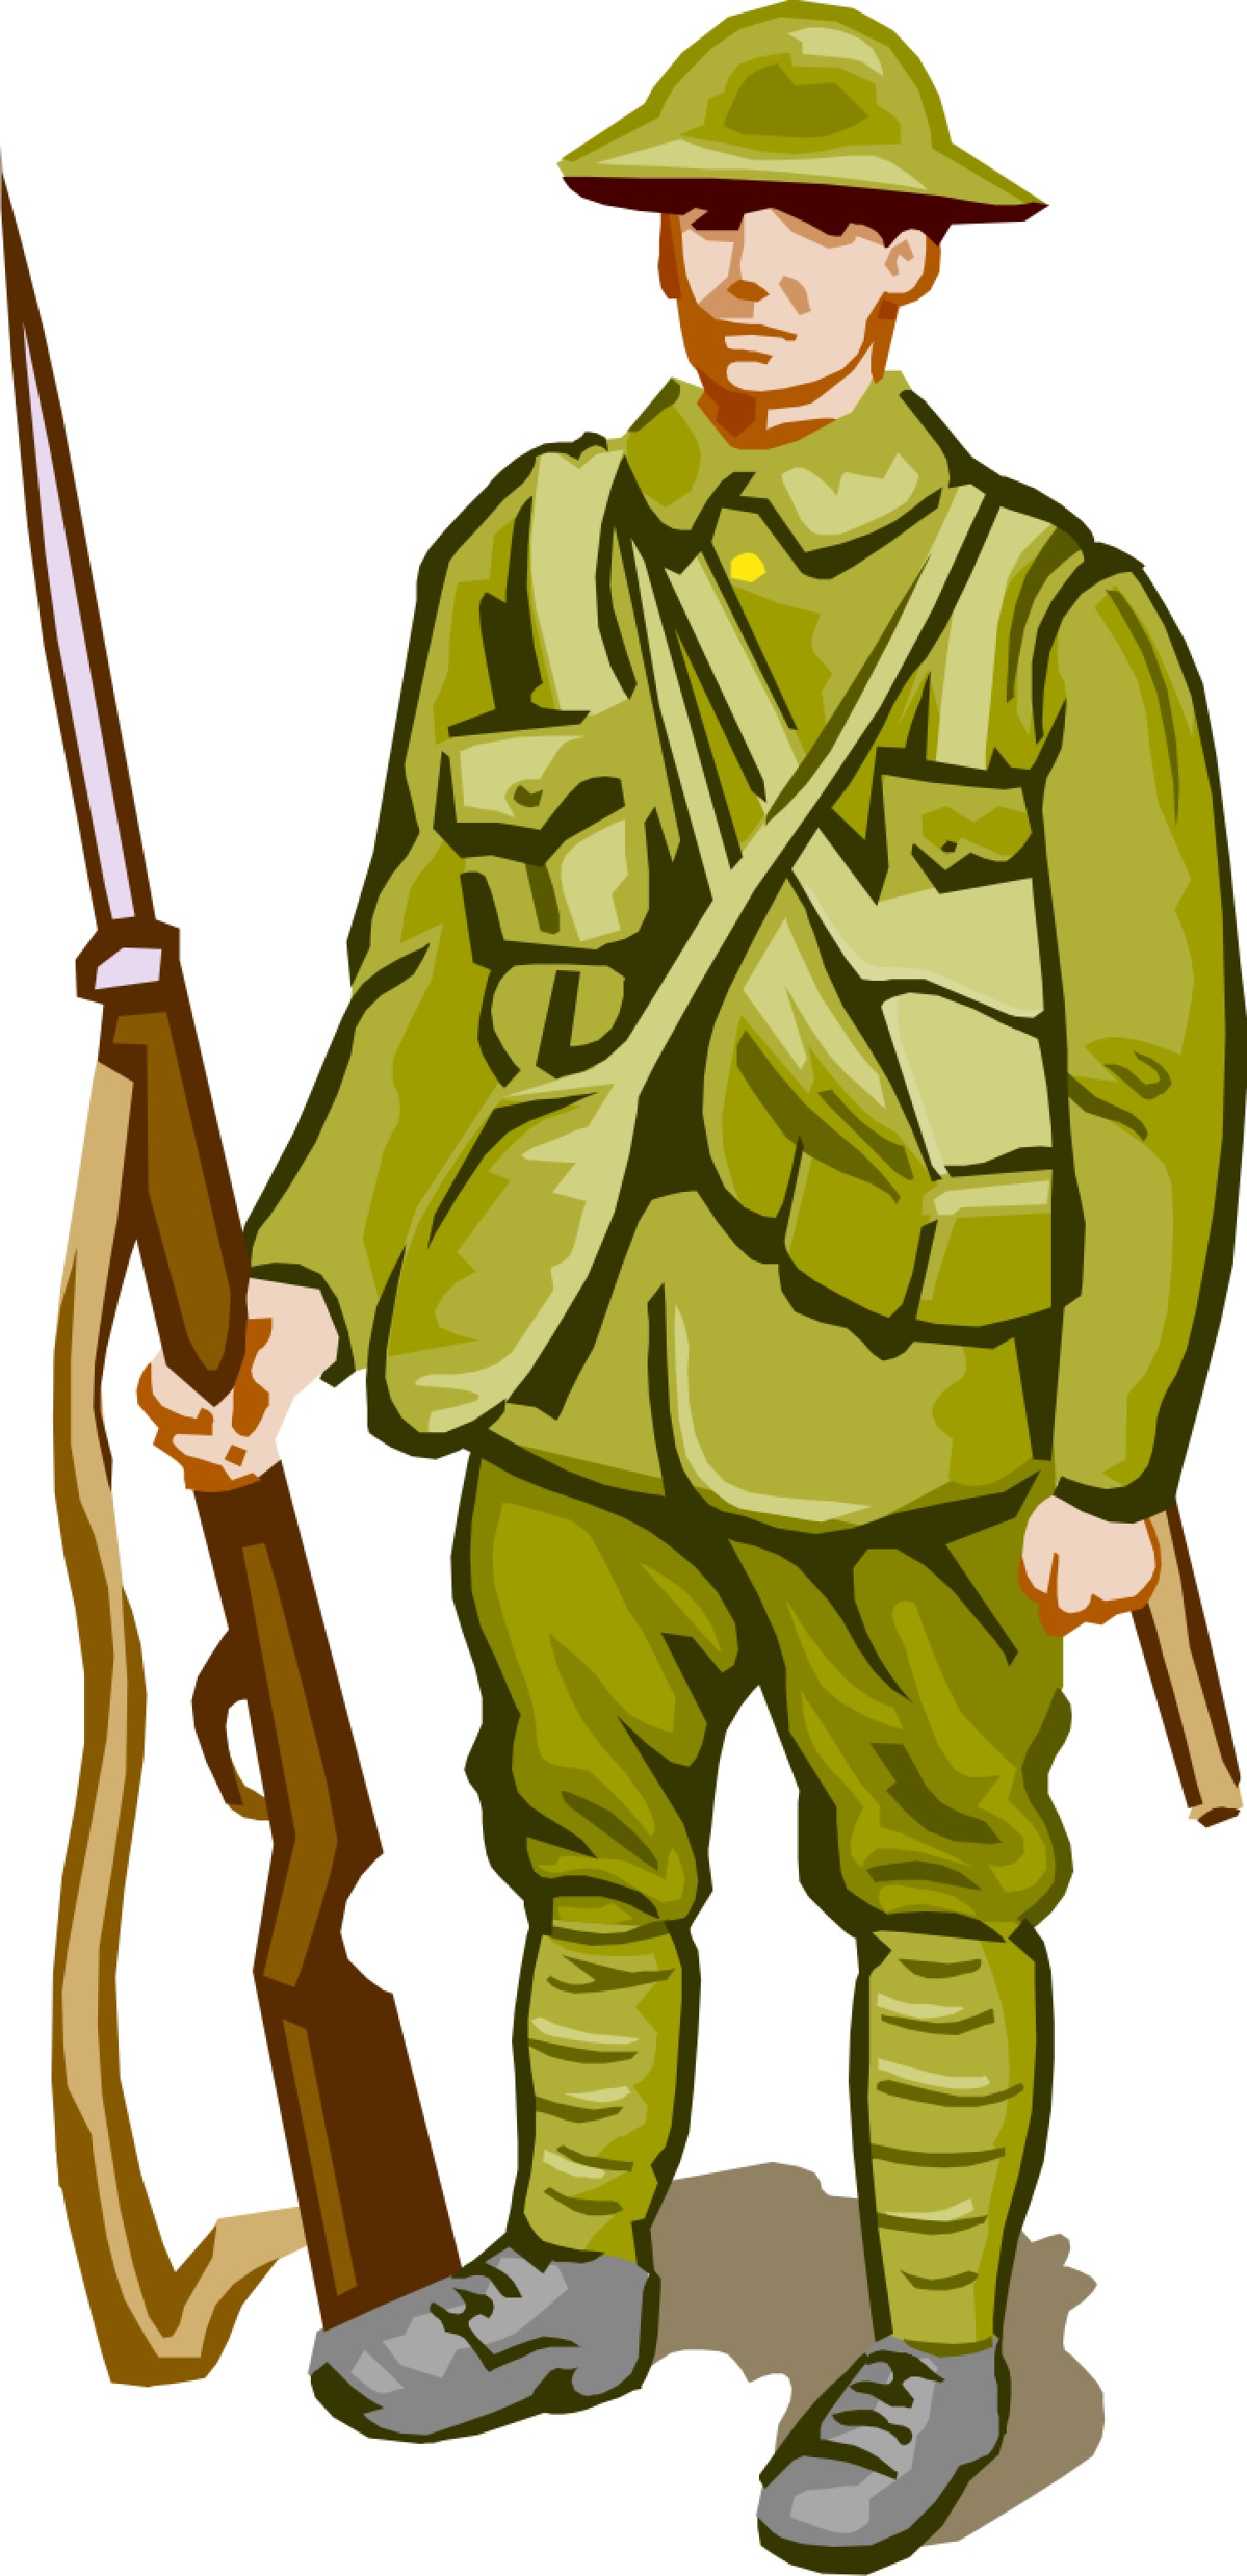 Army clipart army person. Military gun at getdrawings